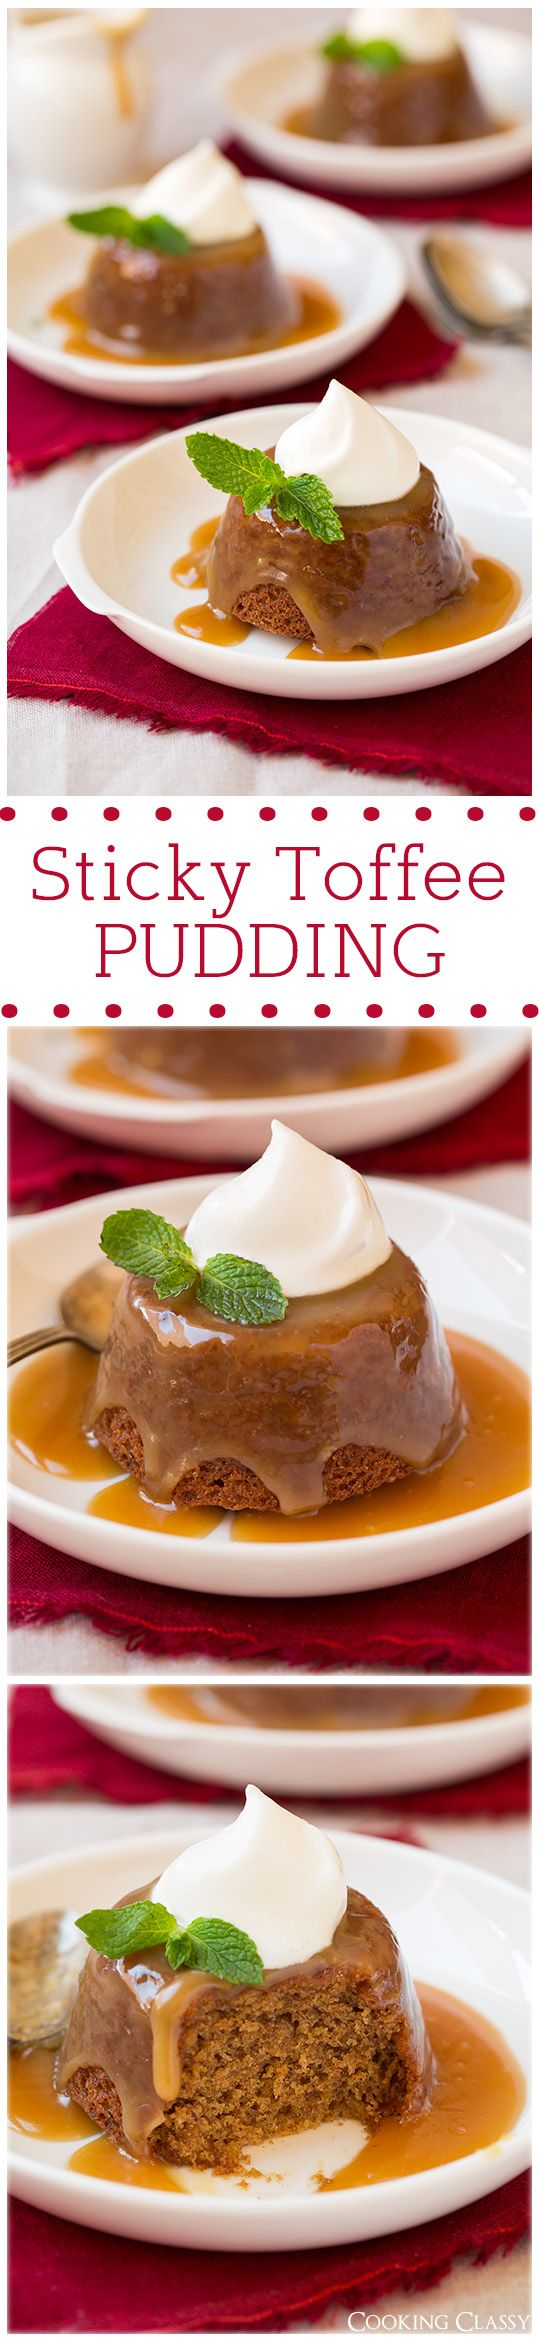 Sticky Toffee Pudding - This is just like what Grandma used to make! Moist, soft and melts in your mouth when served warm! Love that they are in individual cupcakes size servings too.